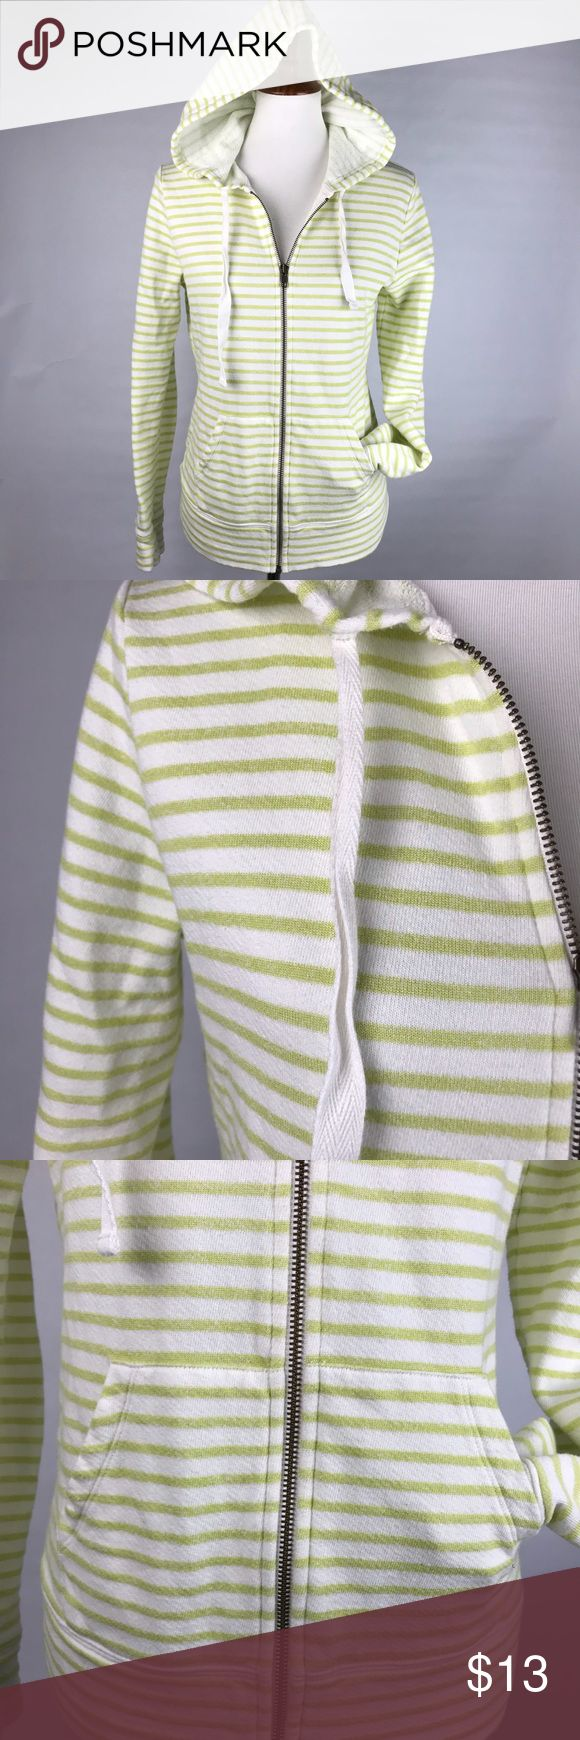 "CASLON green & white large striped zip up hoodie Super cute Caslon brand zip up hoodie! Terry cloth inside, outside is green/yellow (chartreuse) and white striped! Great condition.  Measurements taken laid flat: Bust 19"" across Length 24"" Caslon Tops Sweatshirts & Hoodies"